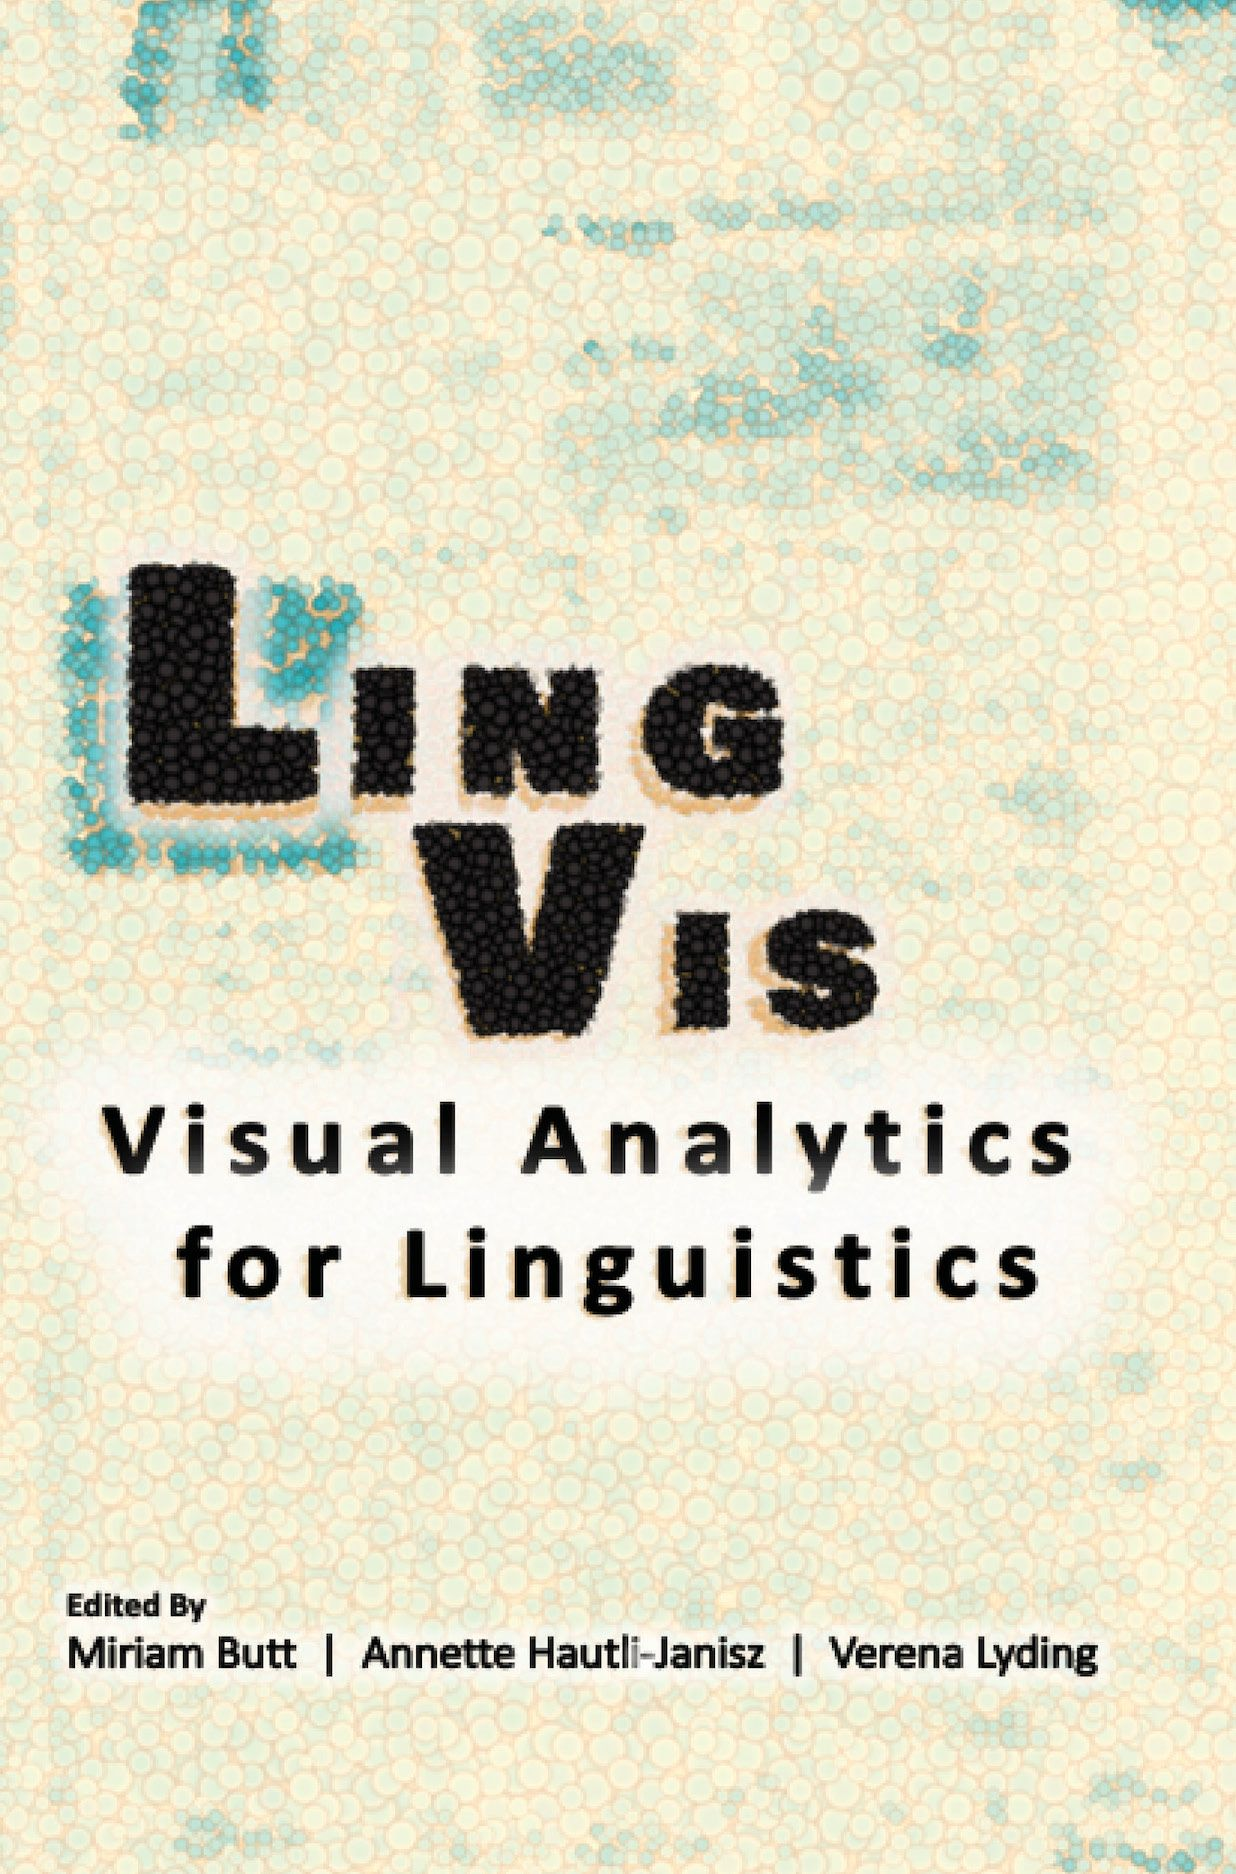 LingVis: Visual Analytics for Linguistics